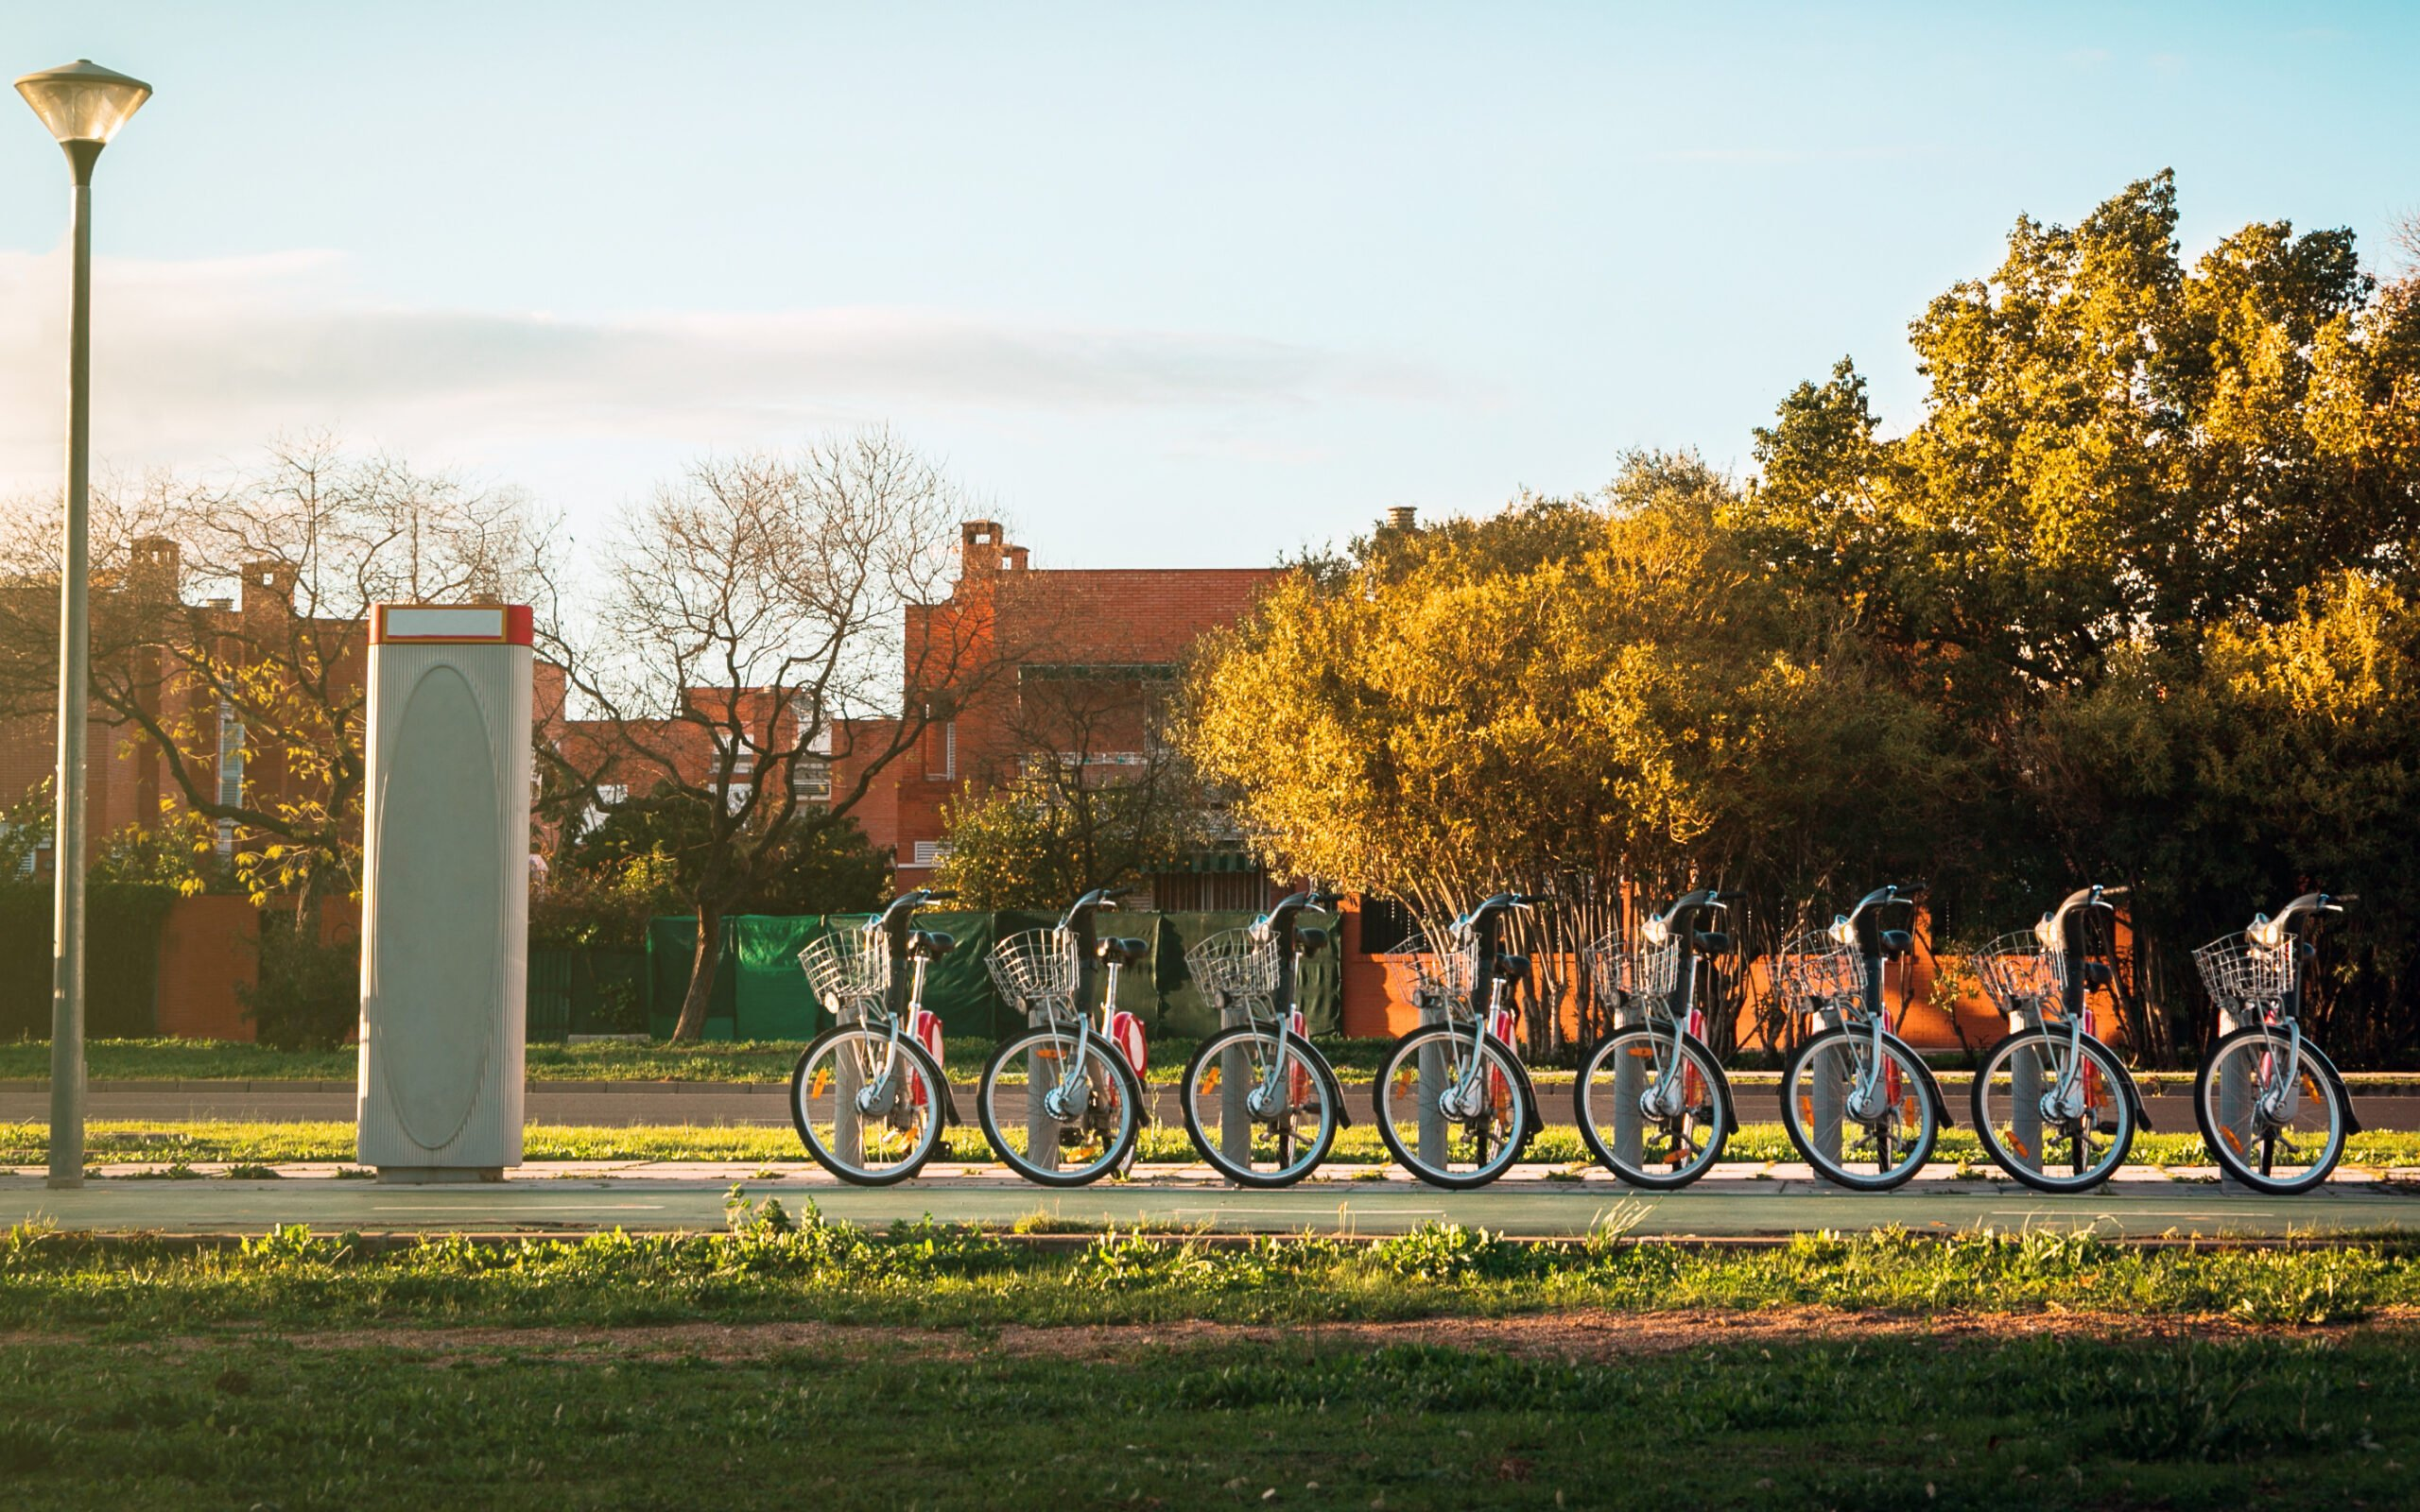 Discover The Beautiful Parks By Bike